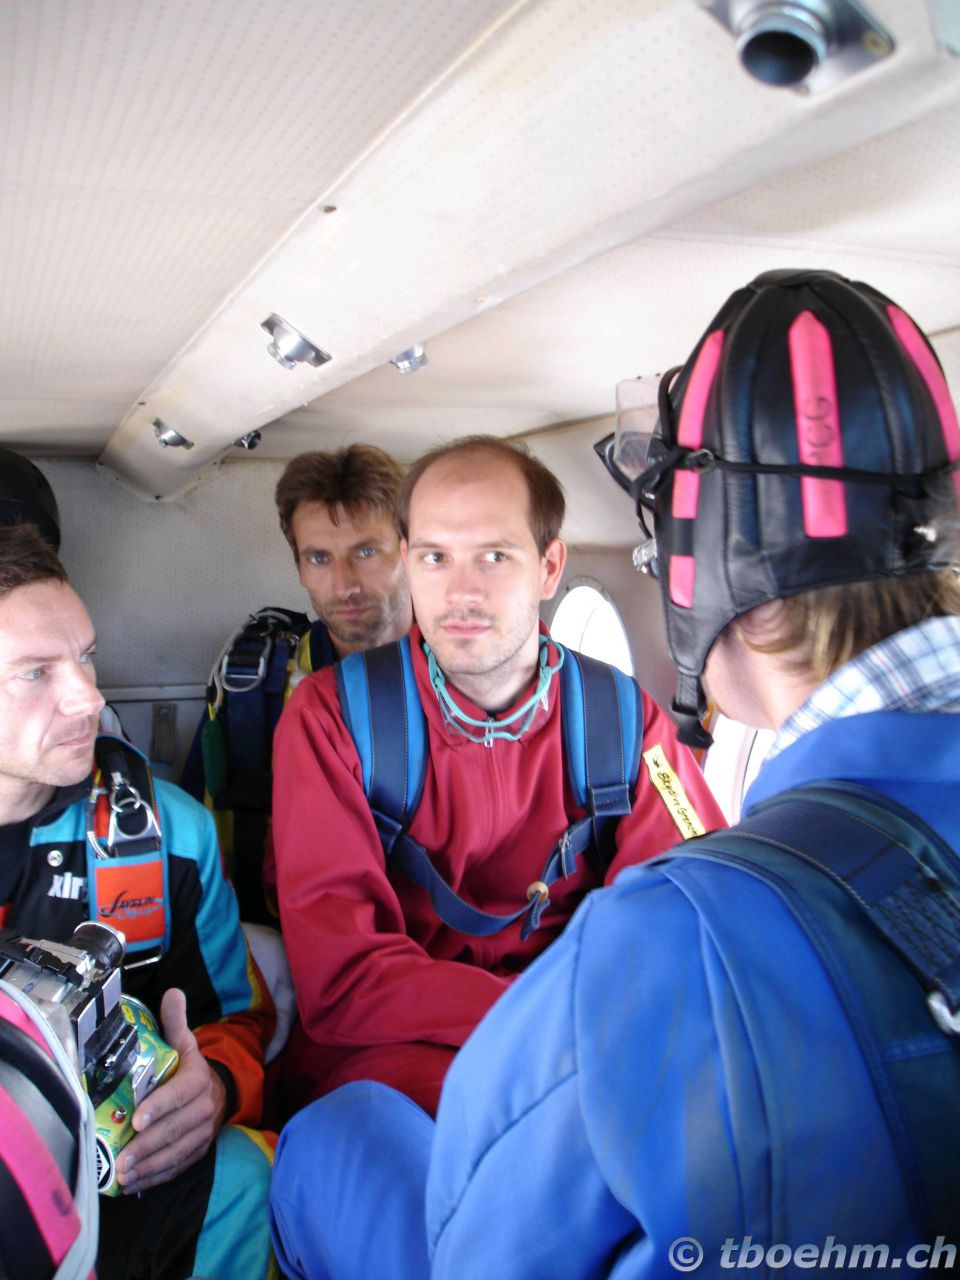 skydive_grenchen_16_07_2006_18_20121125_1524860745